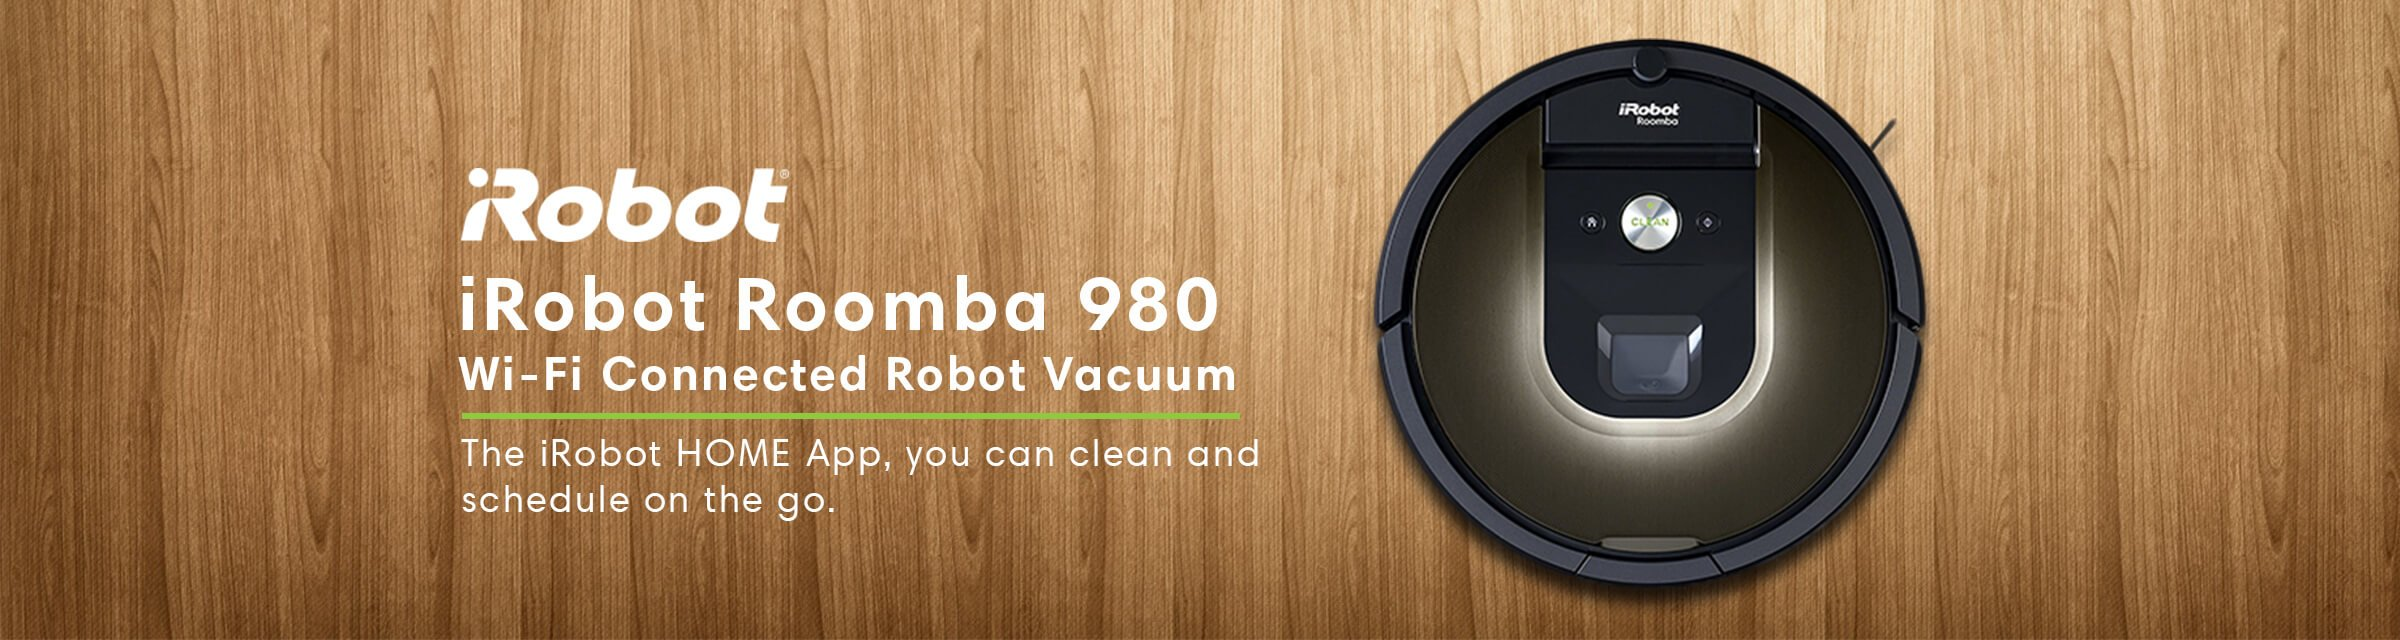 iRobot Roomba 980 Wi-Fi Connected - Robot Vacuum